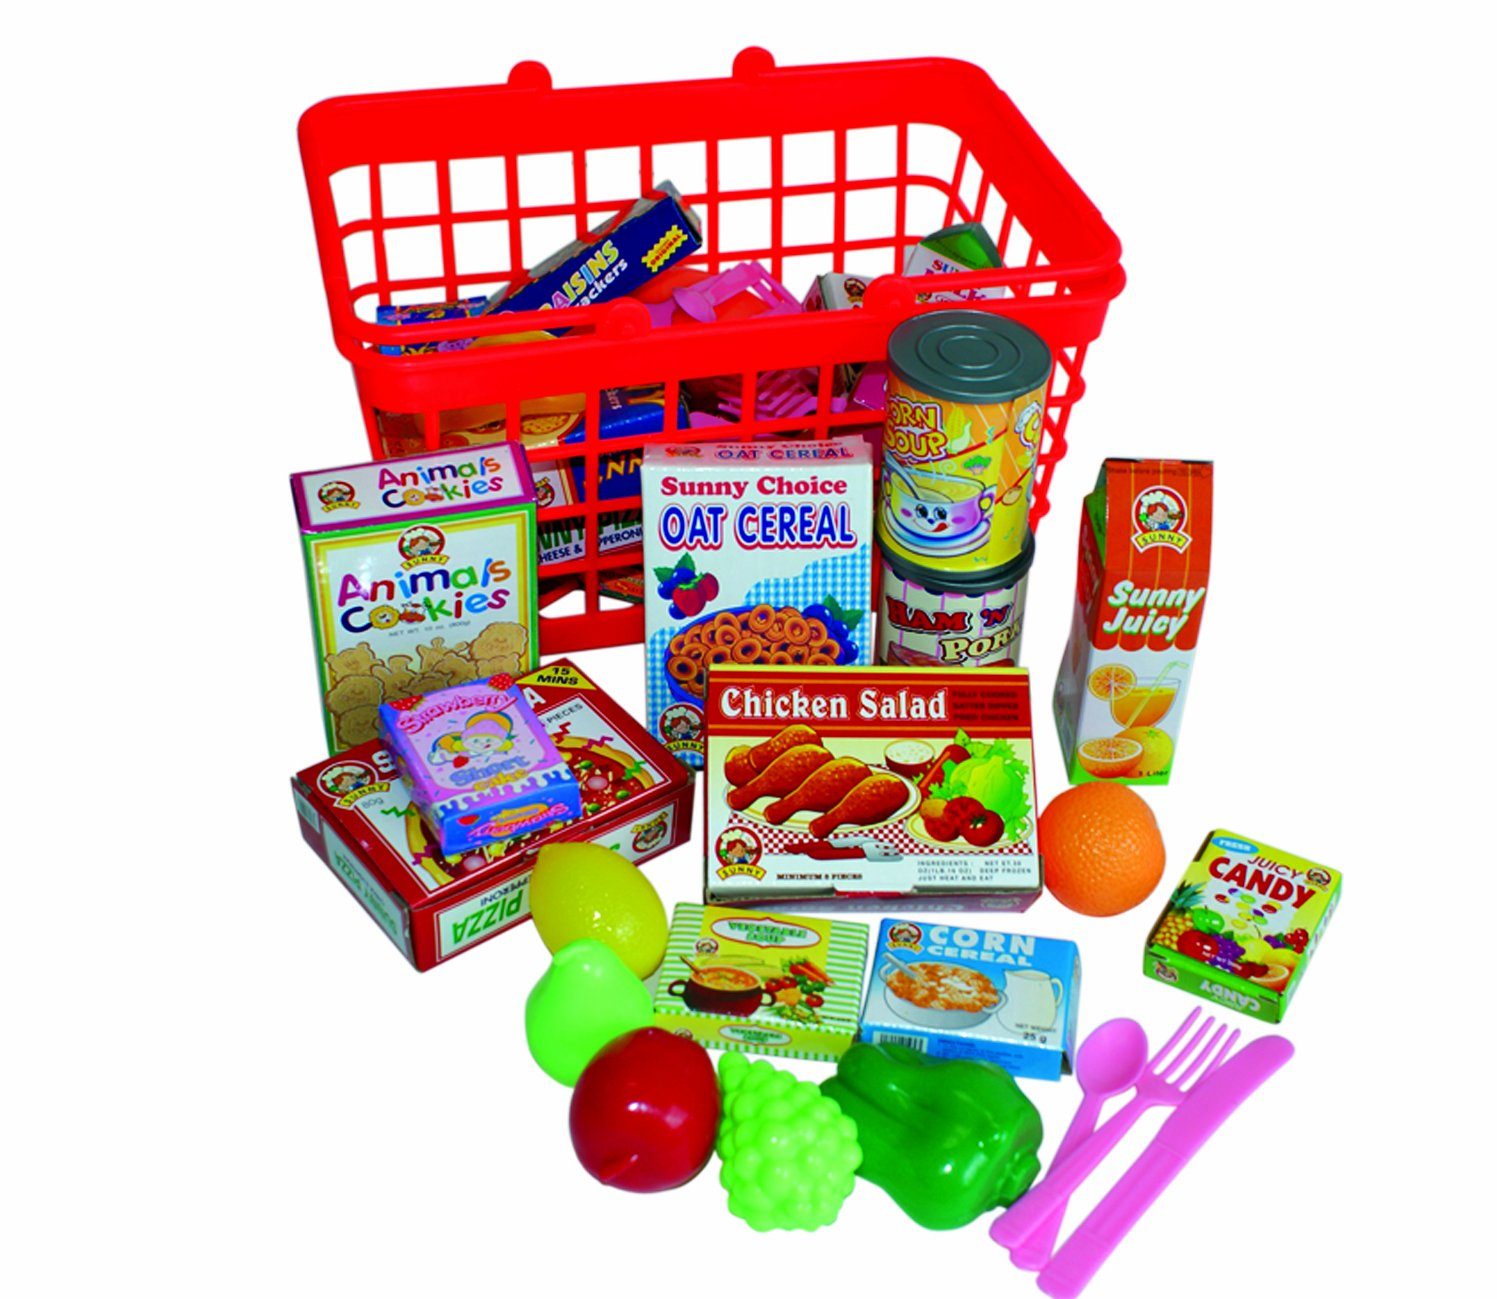 Grocery Basket with Play Food Amazon Toys & Games